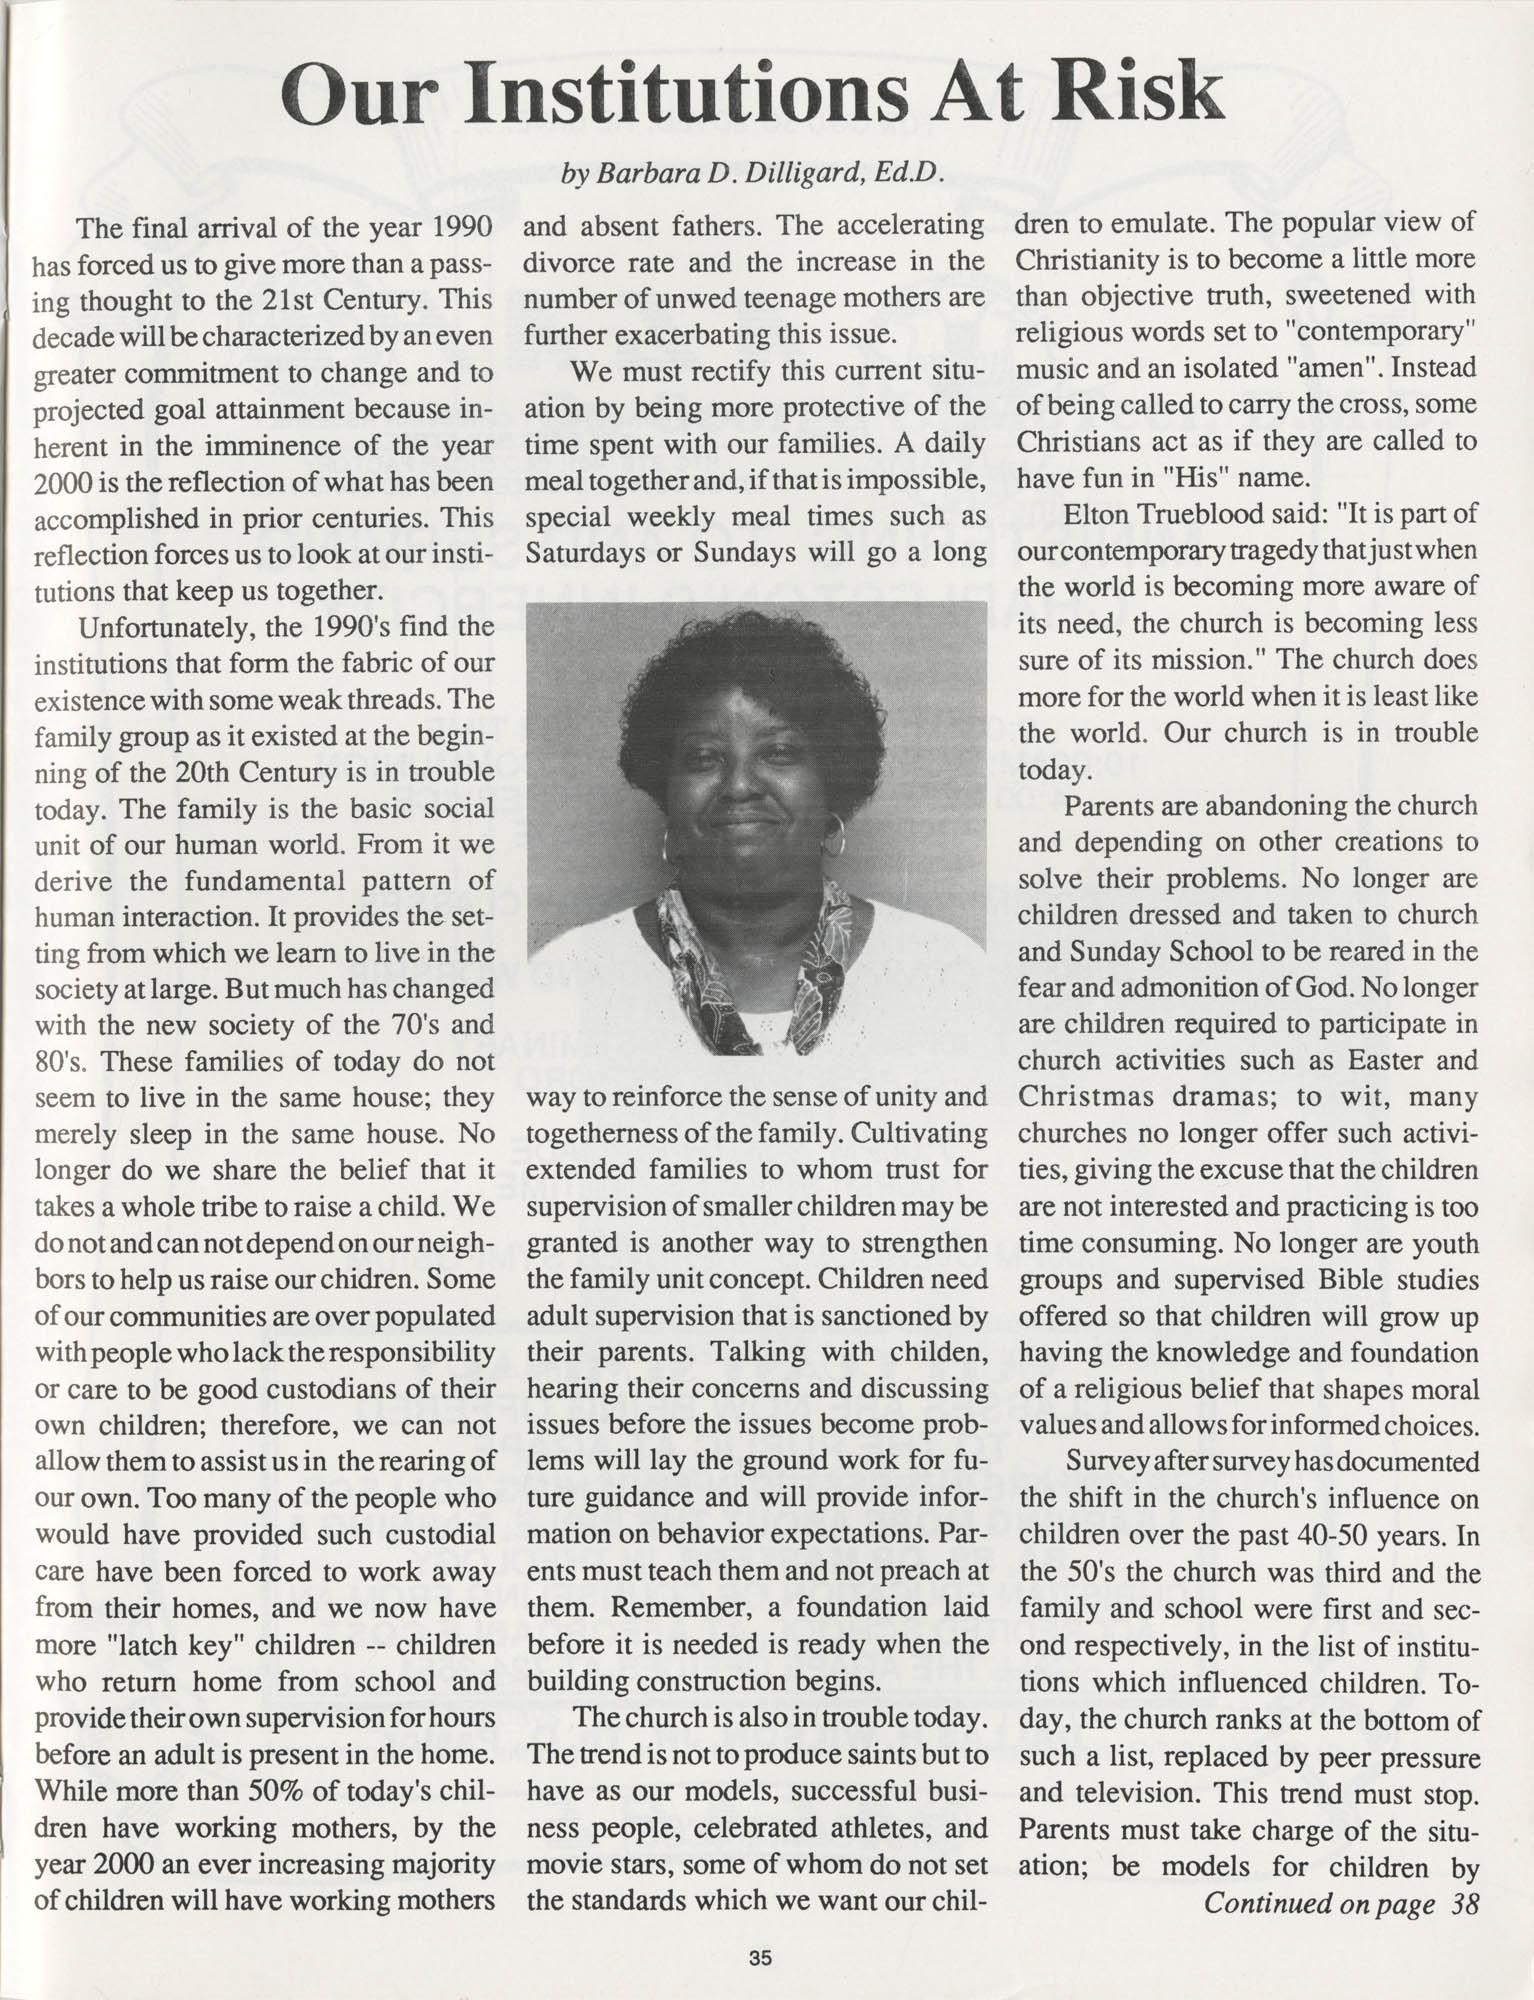 1990 NAACP Freedom Fund Magazine, Charleston Branch of the NAACP, 74th Anniversary, Page 35